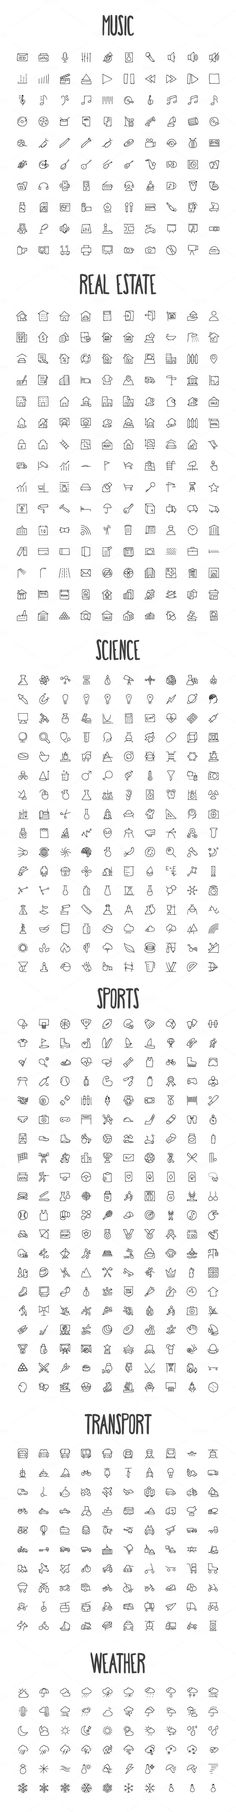 2440 Hand Drawn Doodle Icons Bundle by Creative Stall on Creative Market: